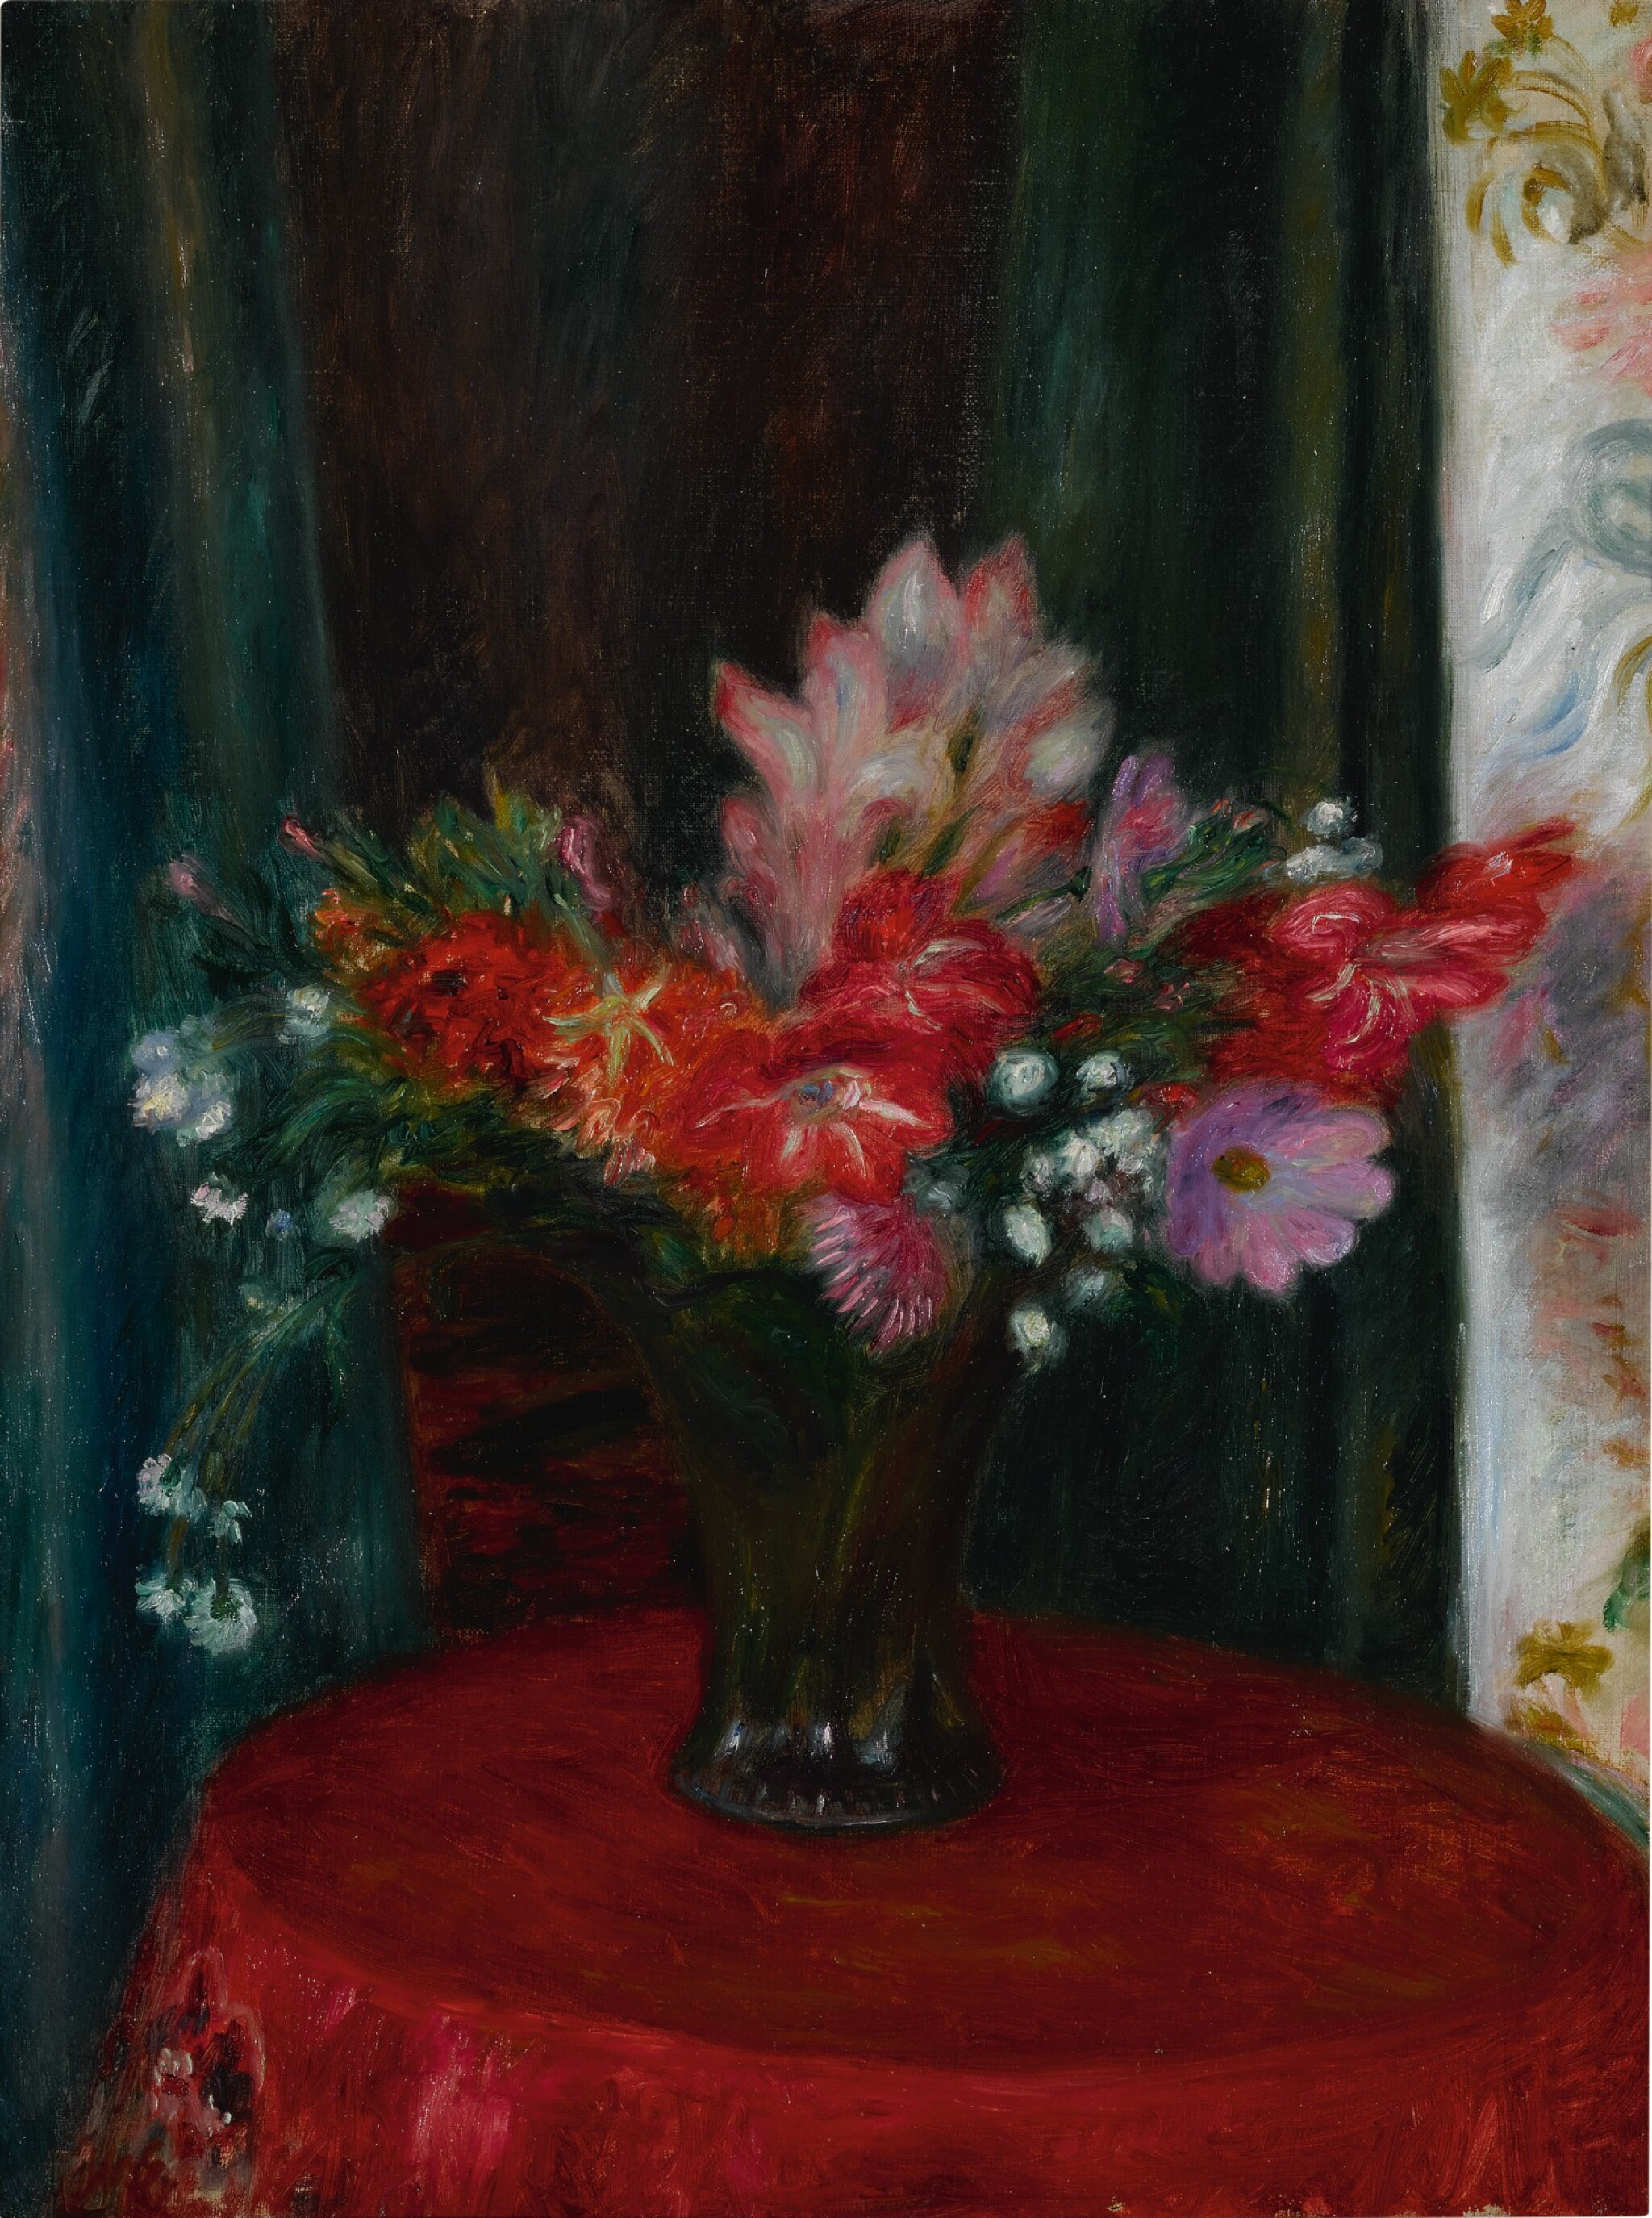 View 1 of Lot 117. Bouquet on Red Tablecloth.